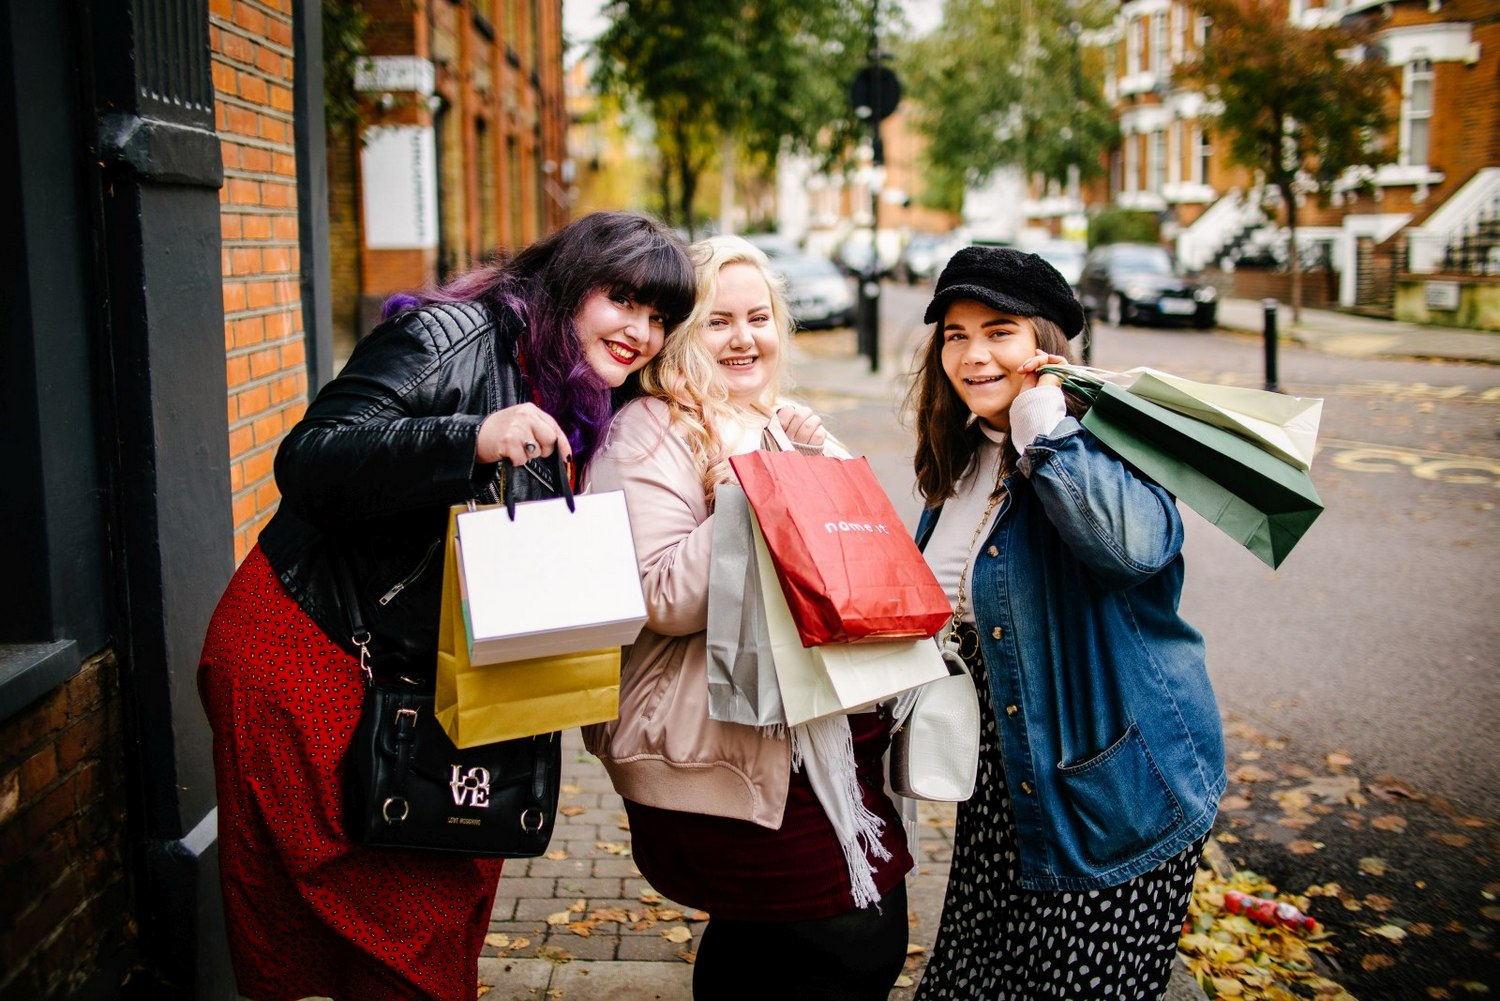 Free Plus Size Stock Images from Navabi